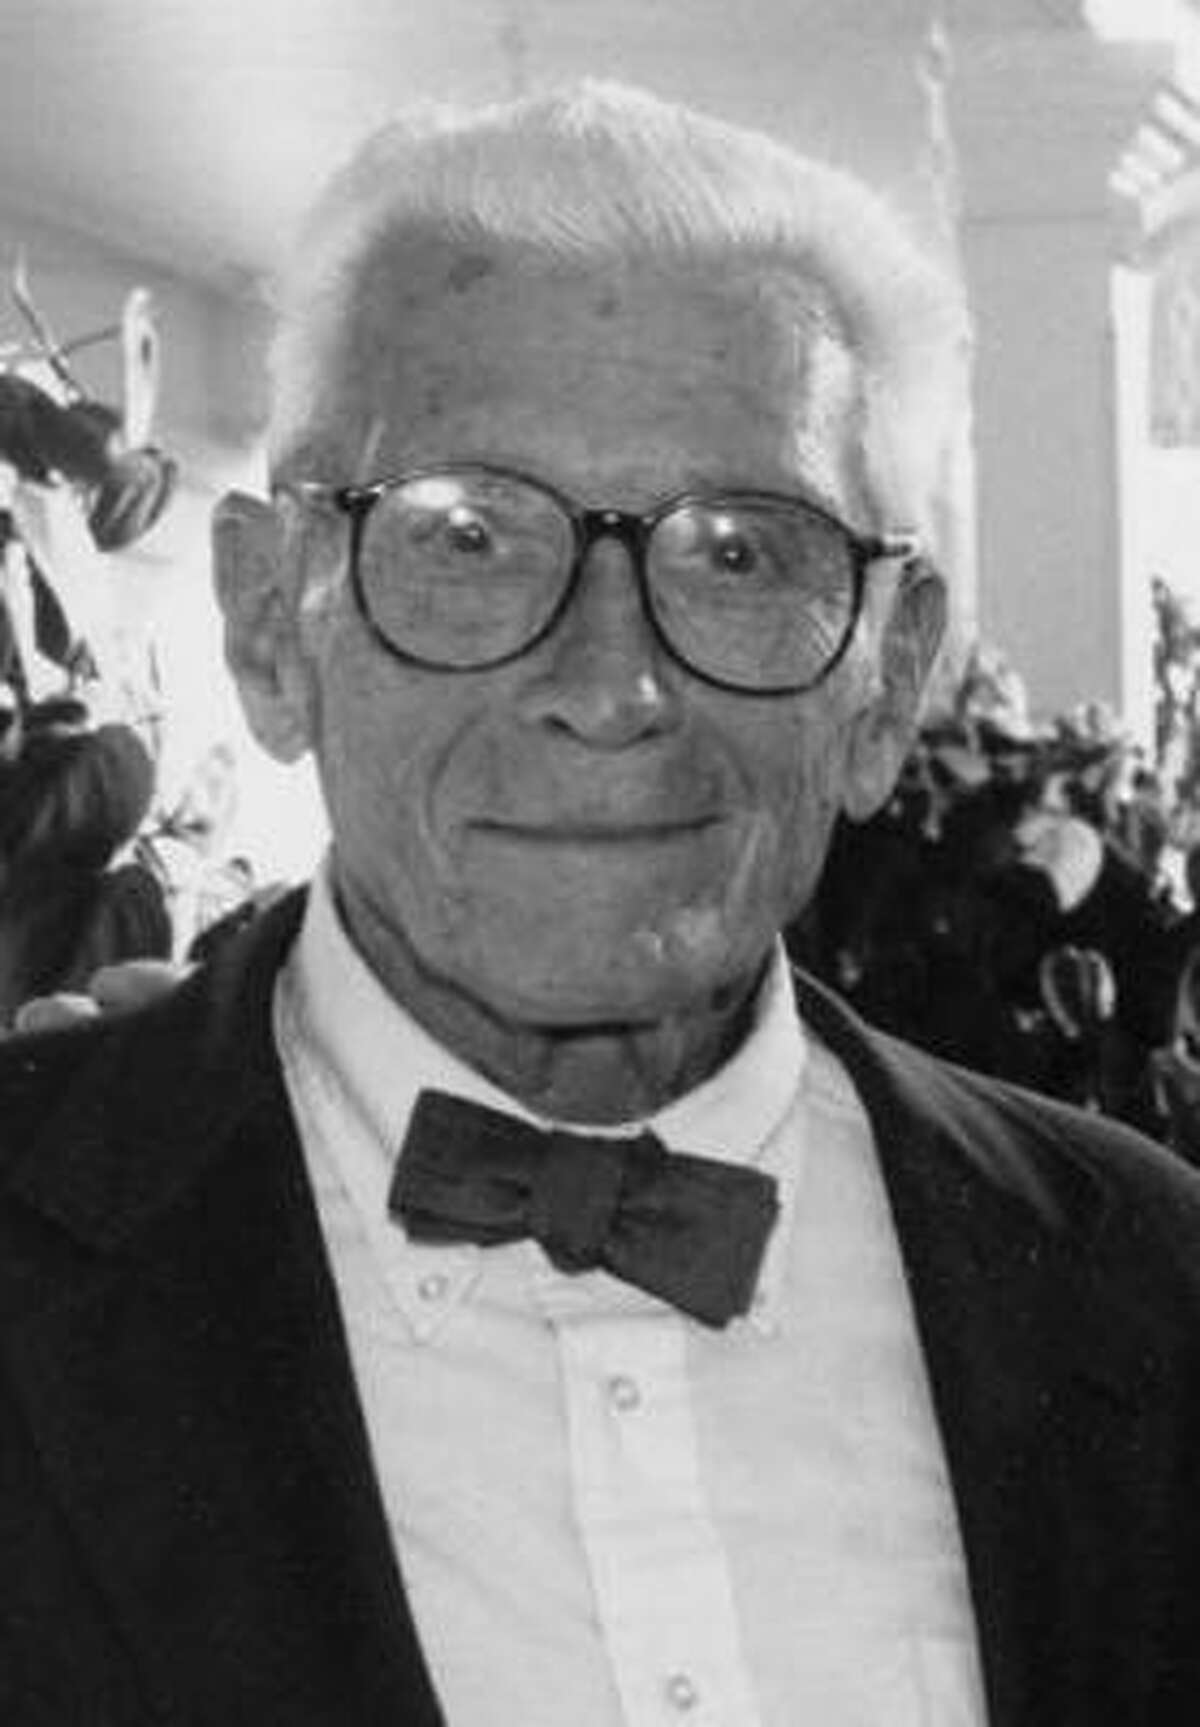 Dr. T. Stewart Hamilton, father of Jeanne Hamilton. Dr. Hamilton passed away in 2002 at the age of 91. (contributed photo)